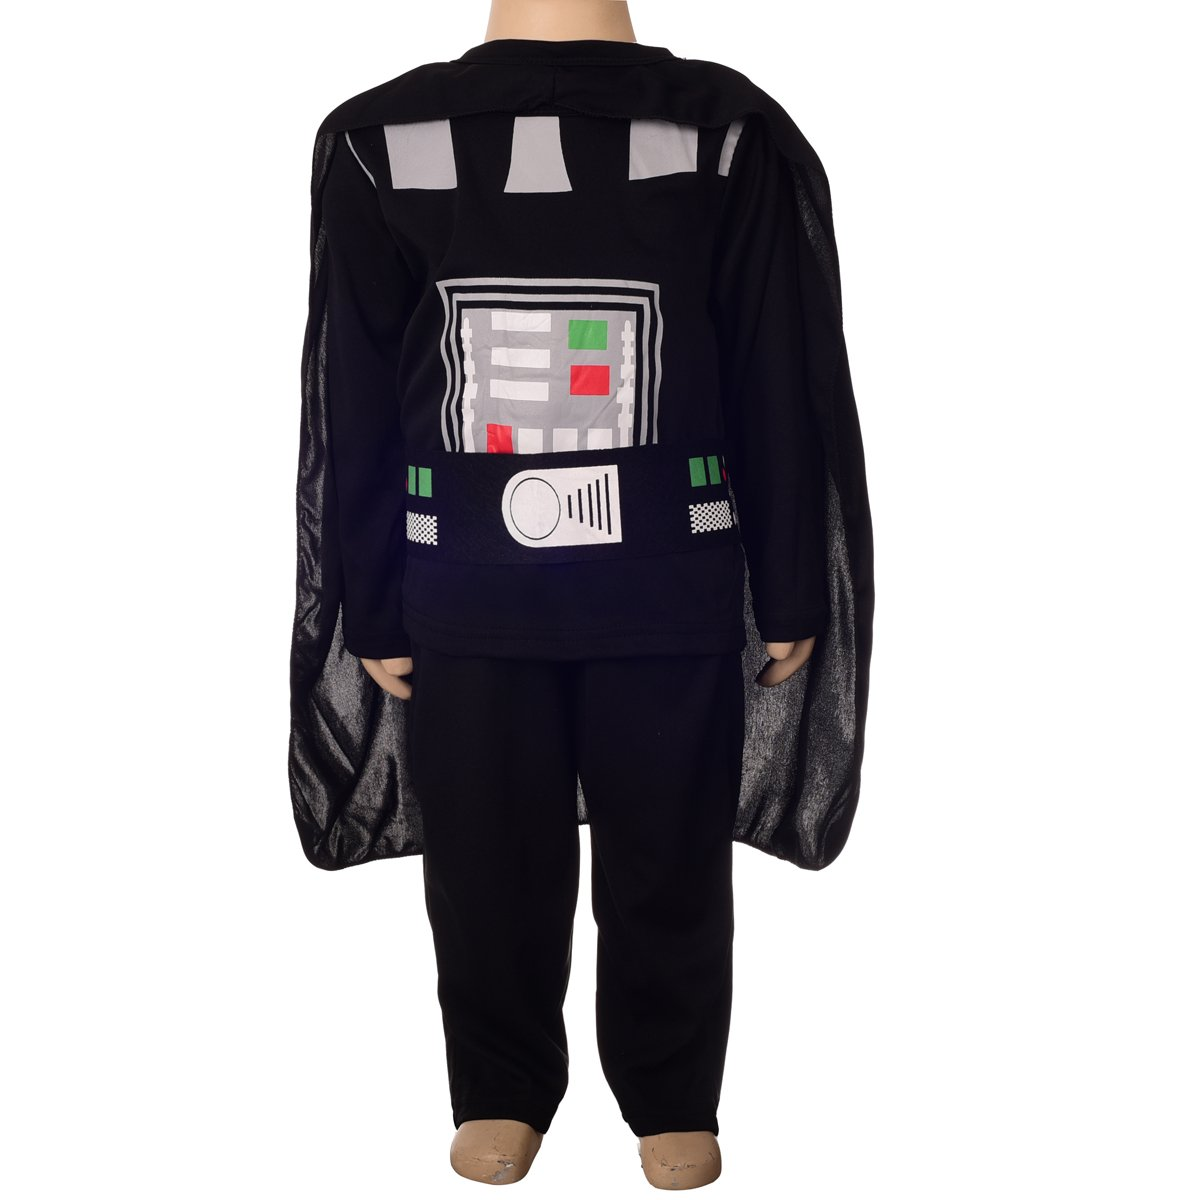 Star Wars Darth Vader Child Costume for 5-6